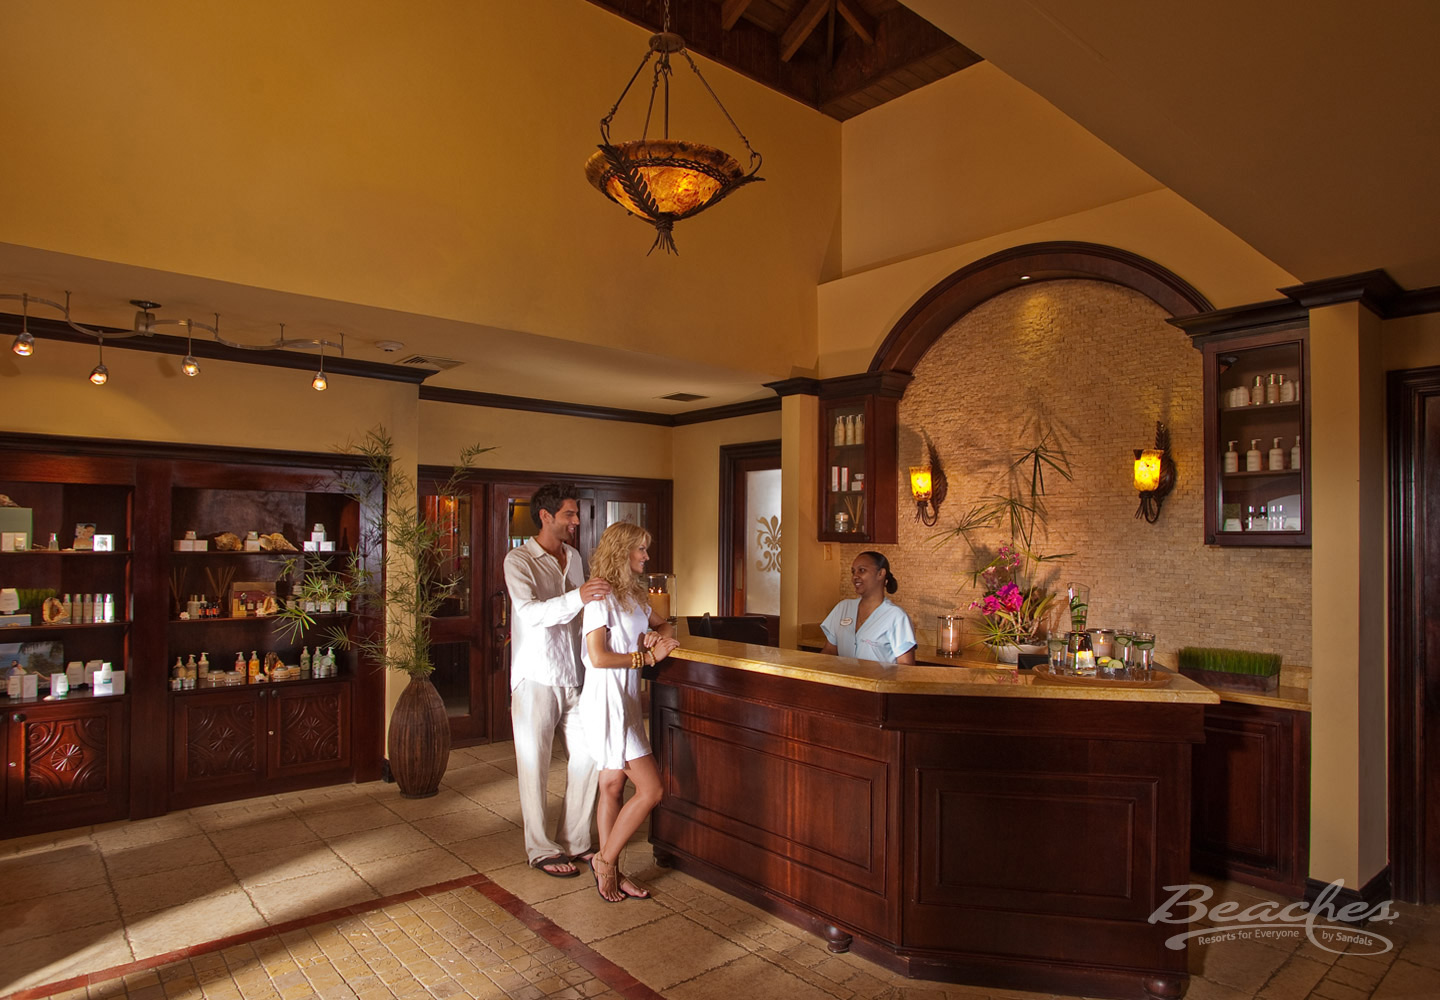 Travel Agency All-Inclusive Resort Beaches Negril 089